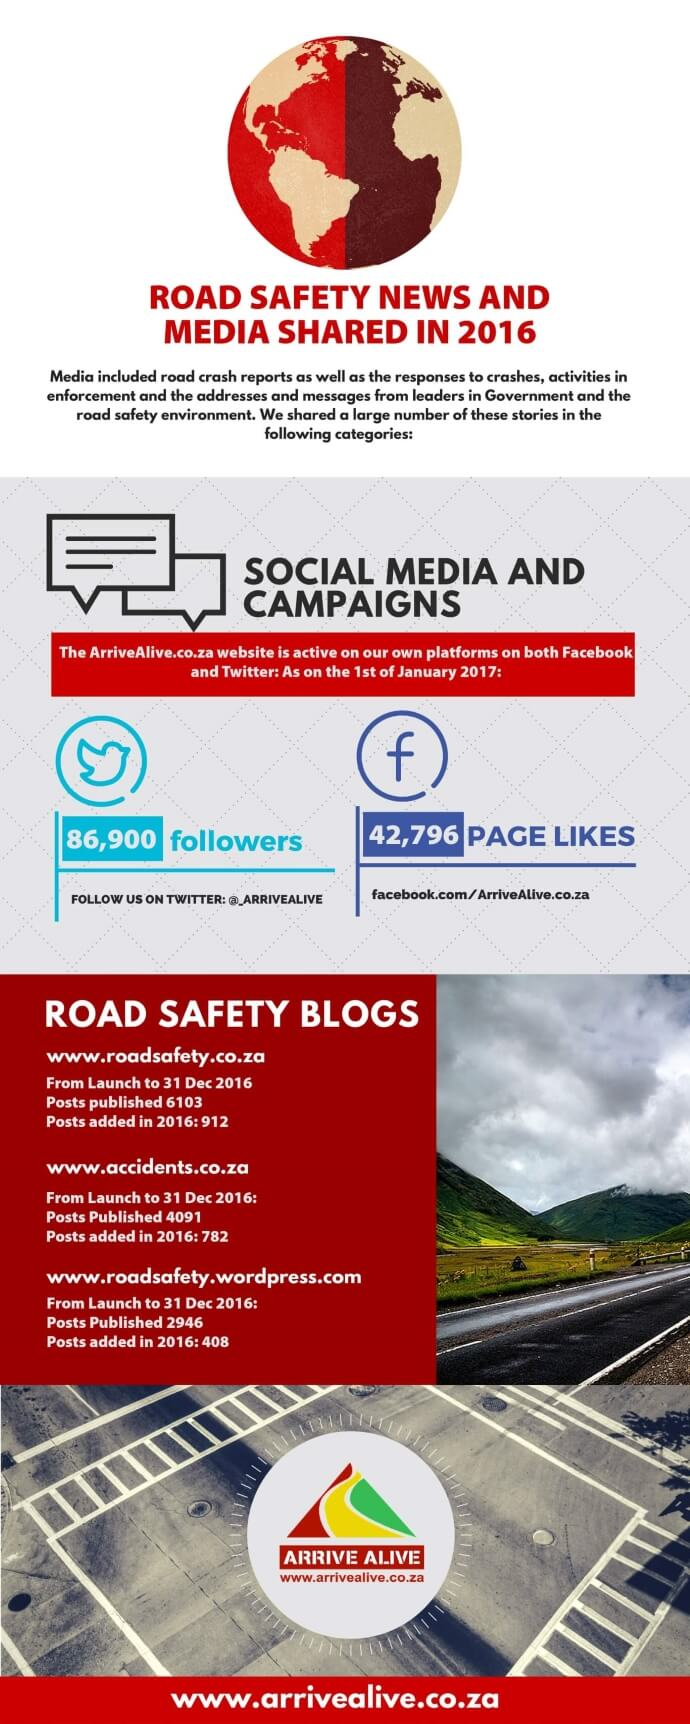 Road Safety News and Media Shared in 2016